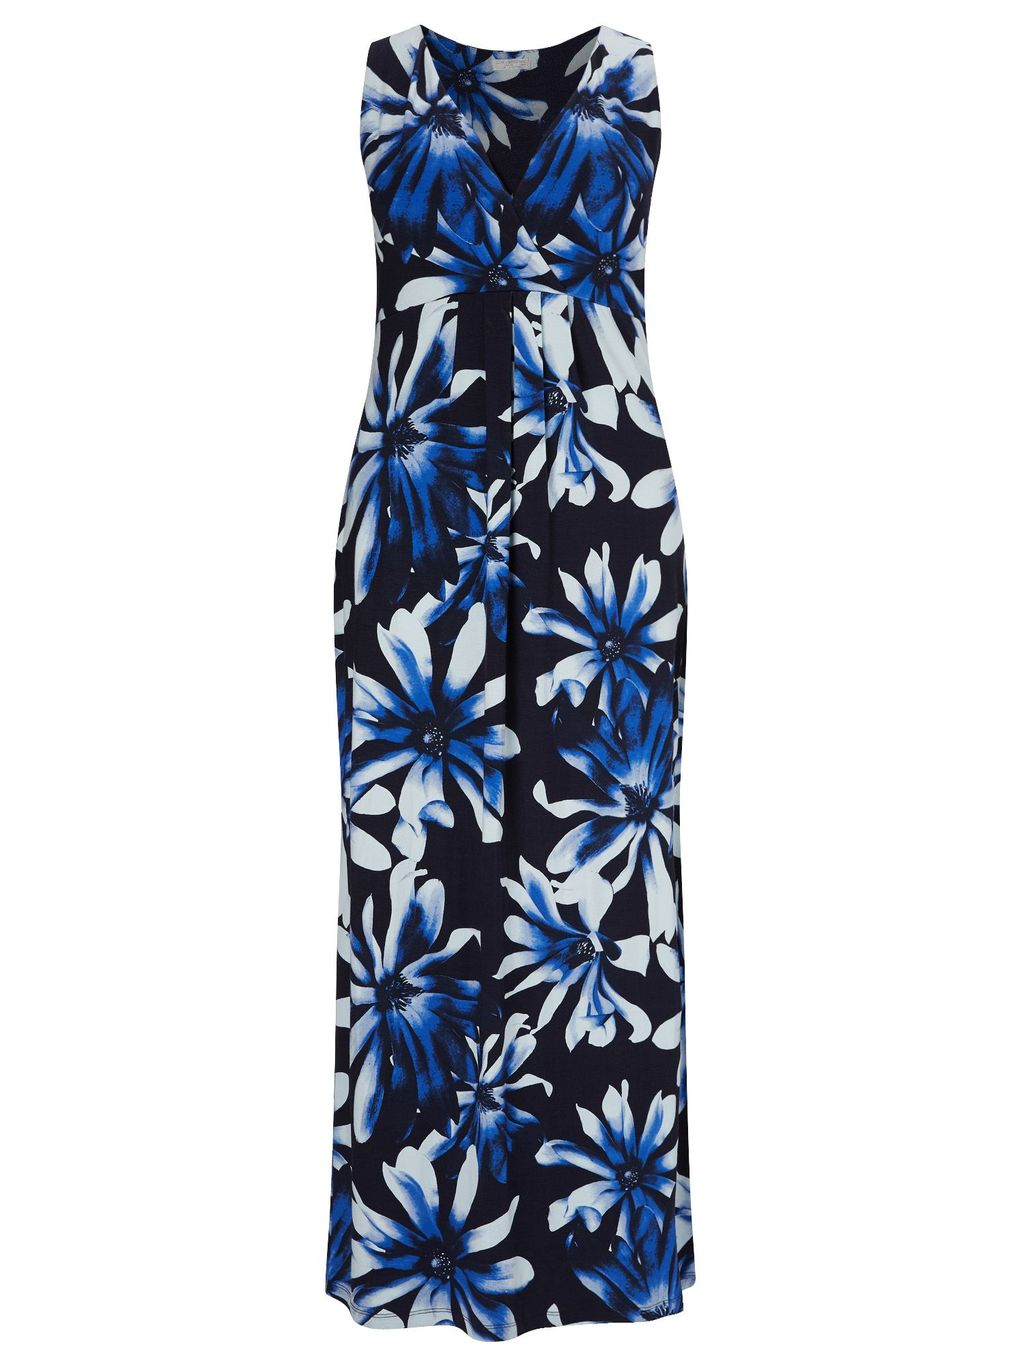 Anise Print Maxi Dress, Blue - style: tea dress; neckline: v-neck; sleeve style: sleeveless; secondary colour: white; predominant colour: navy; occasions: evening; length: floor length; fit: body skimming; fibres: viscose/rayon - stretch; sleeve length: sleeveless; pattern type: fabric; pattern: florals; texture group: jersey - stretchy/drapey; multicoloured: multicoloured; season: s/s 2016; wardrobe: event